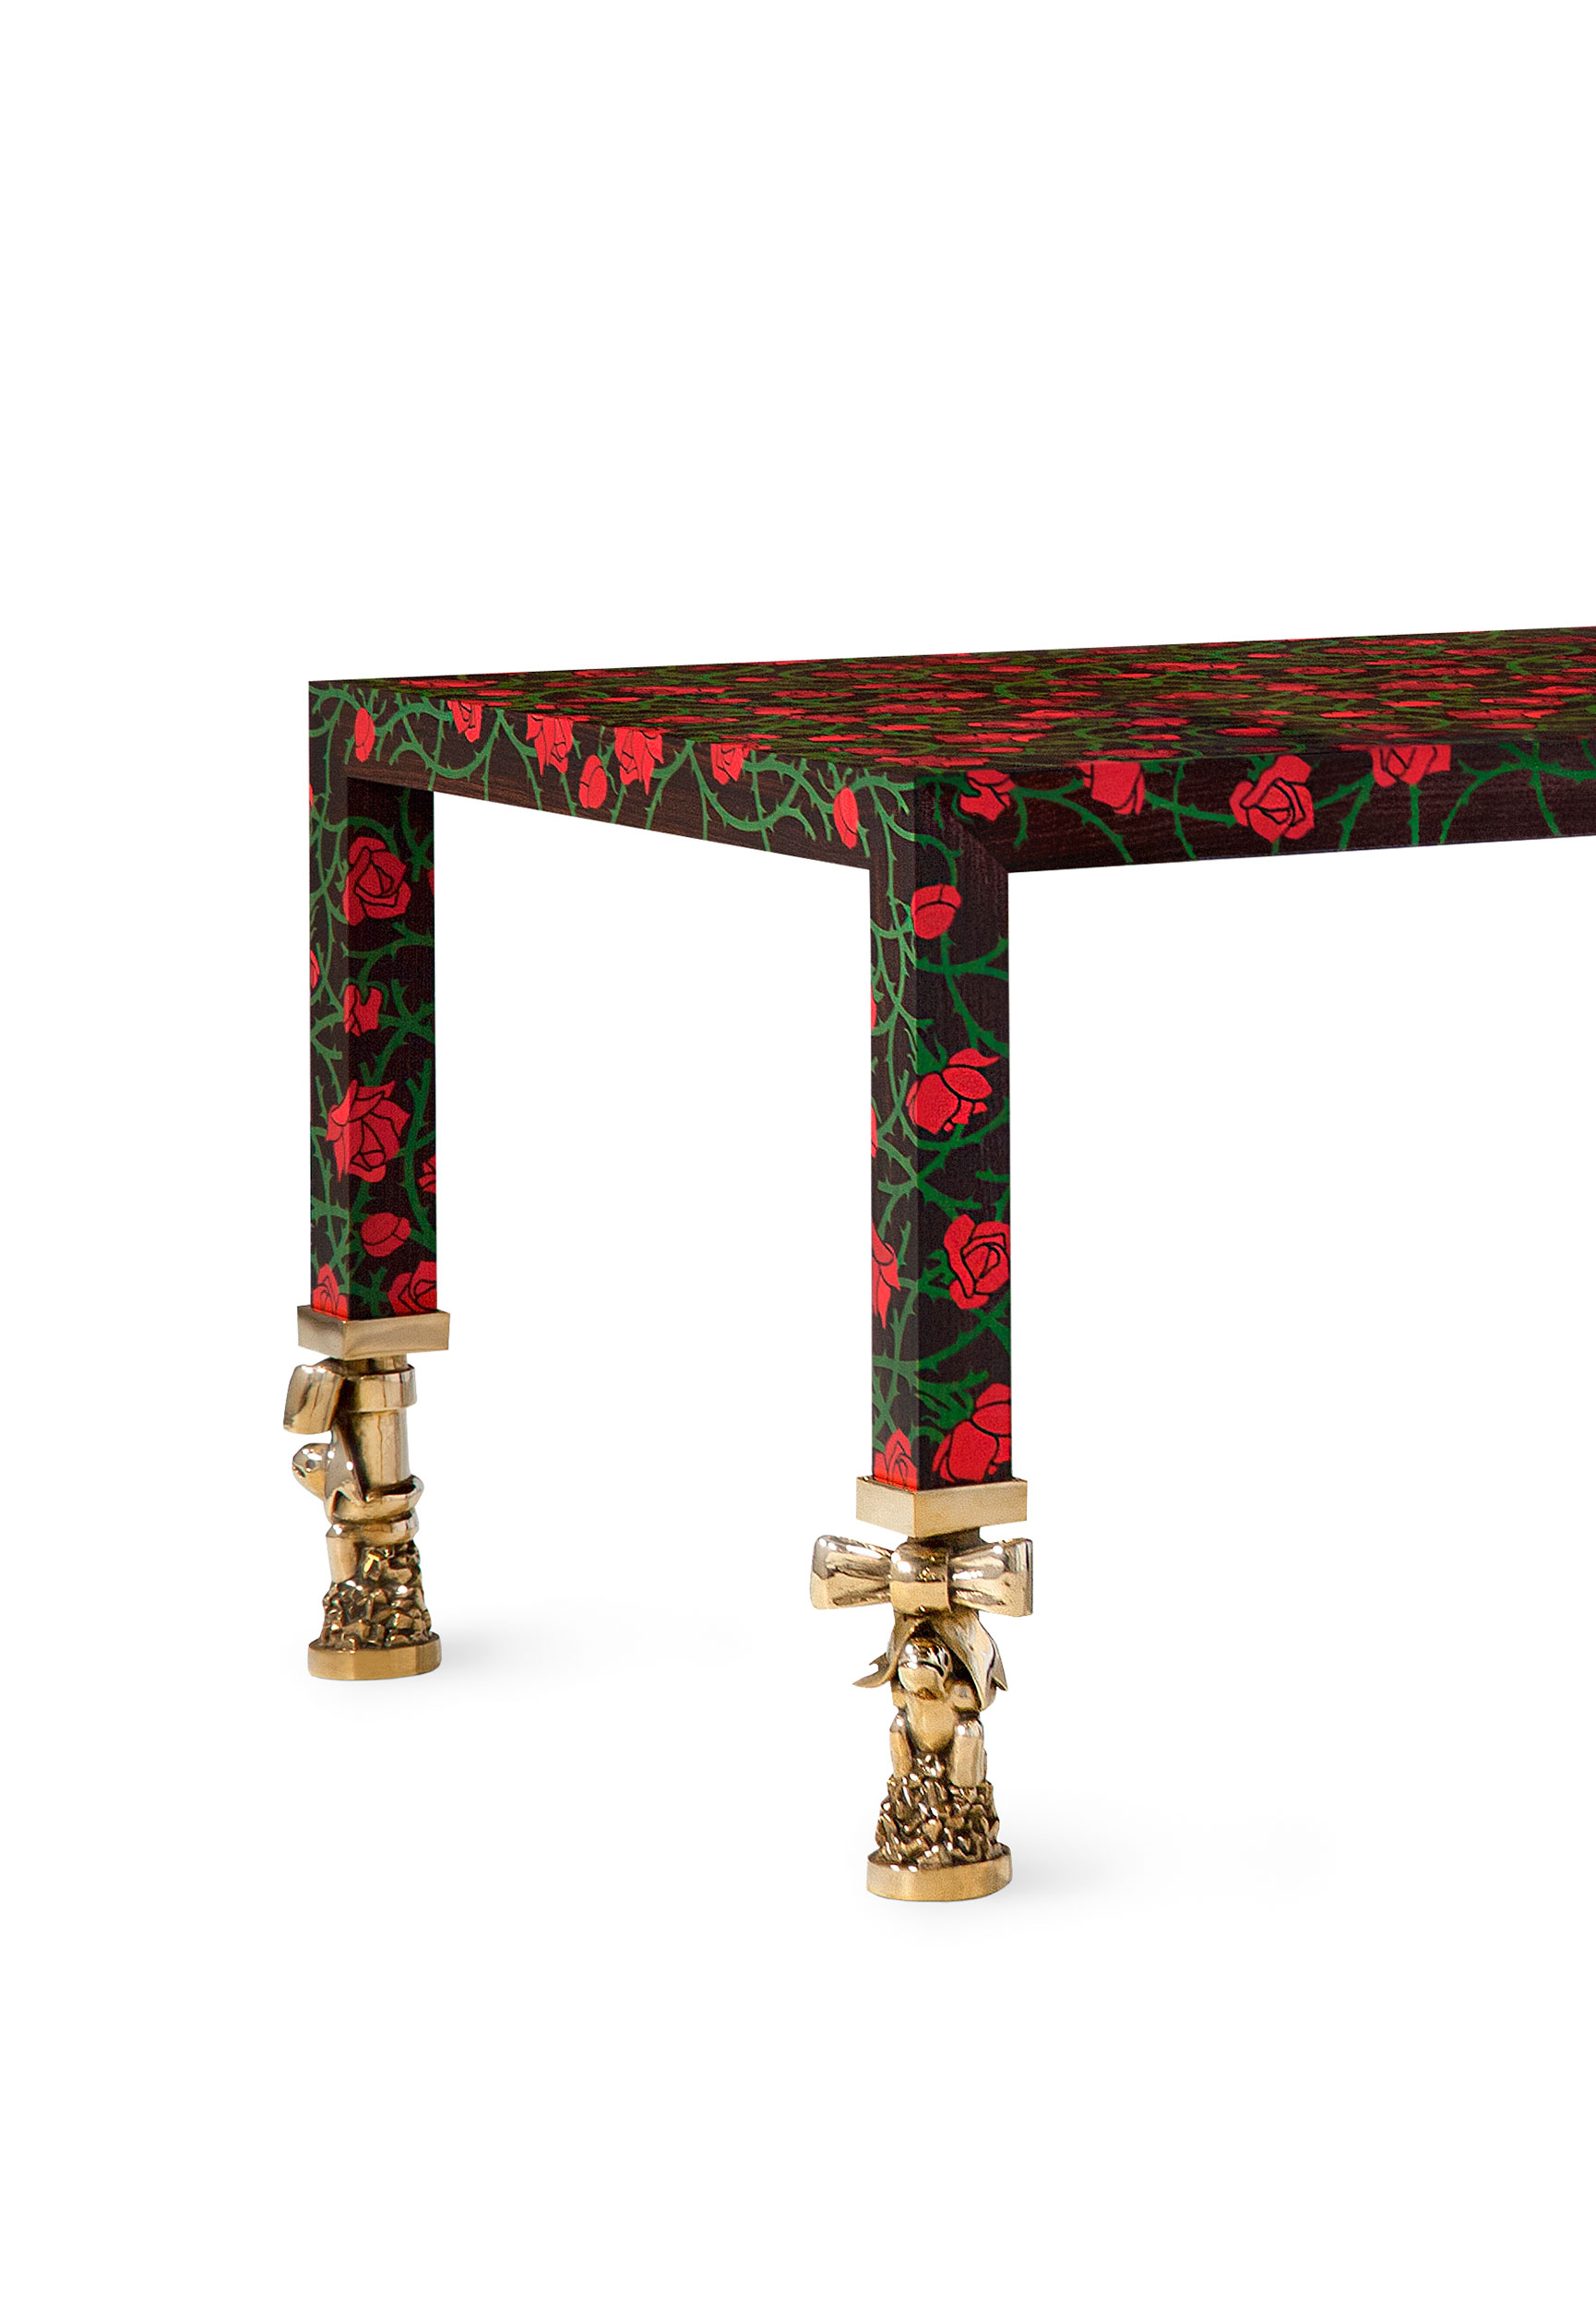 Rose_Table_2005